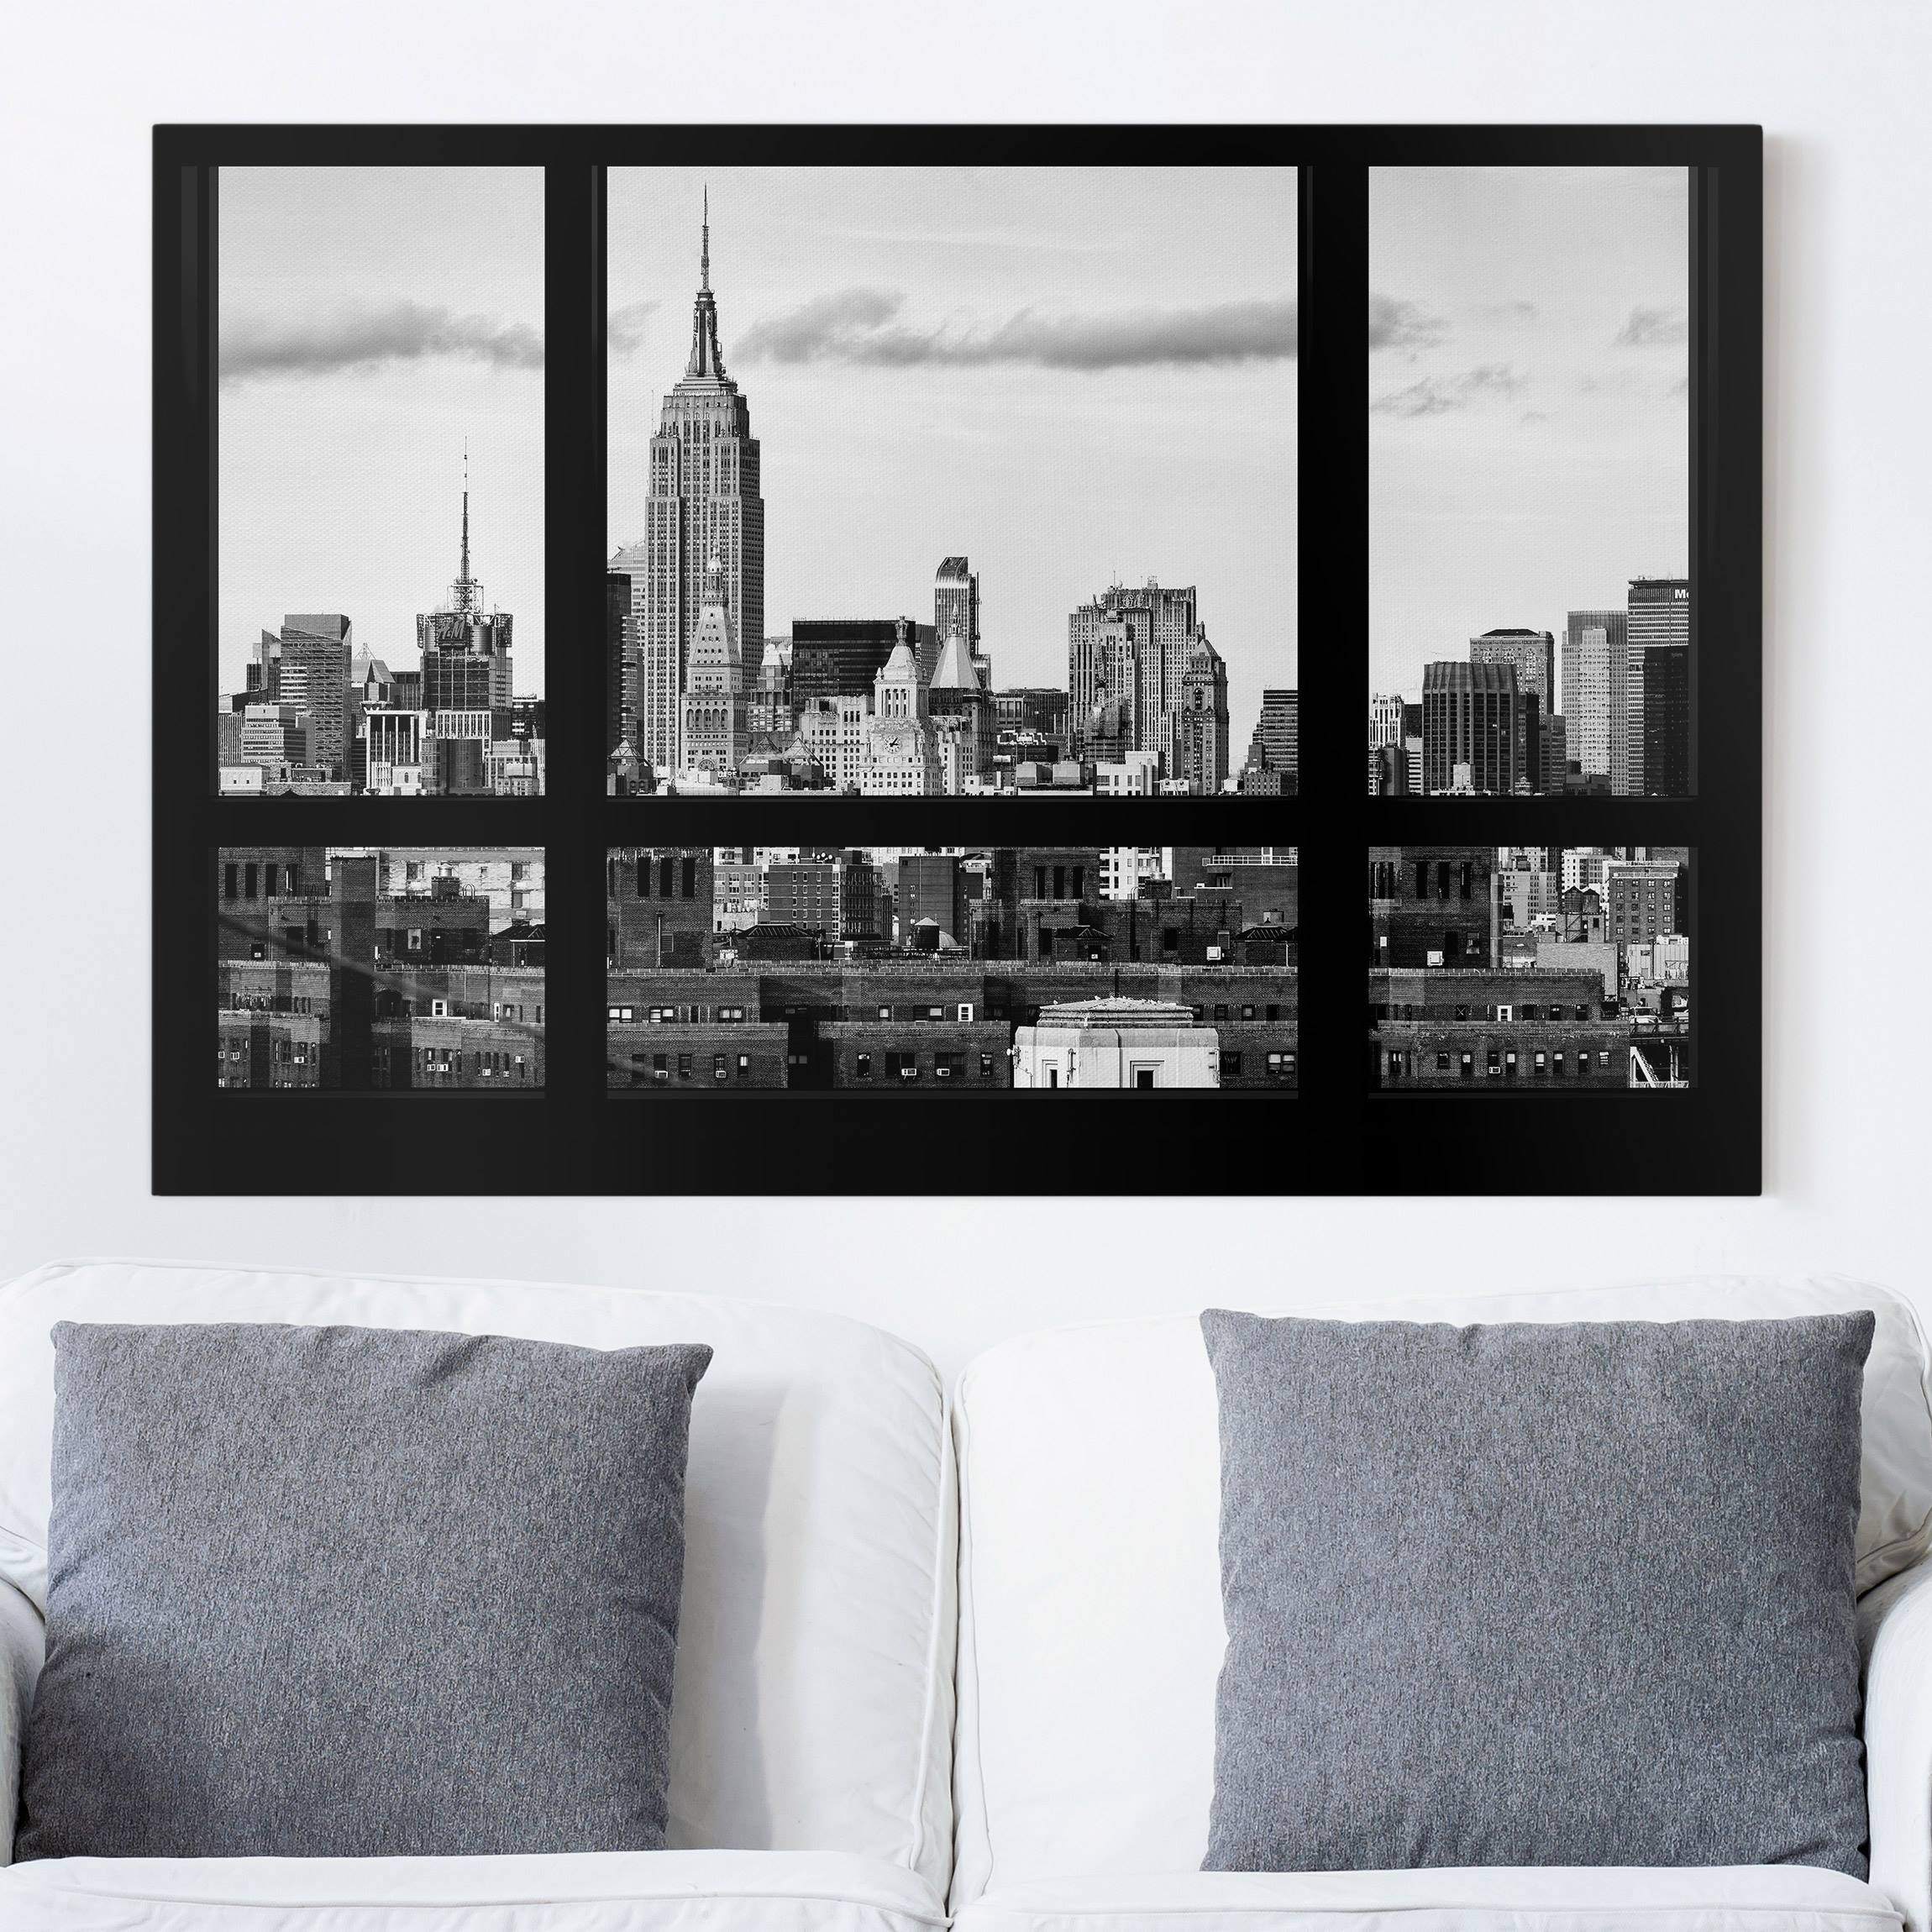 leinwandbild fensterblick new york skyline schwarz weiss quer 2 3. Black Bedroom Furniture Sets. Home Design Ideas